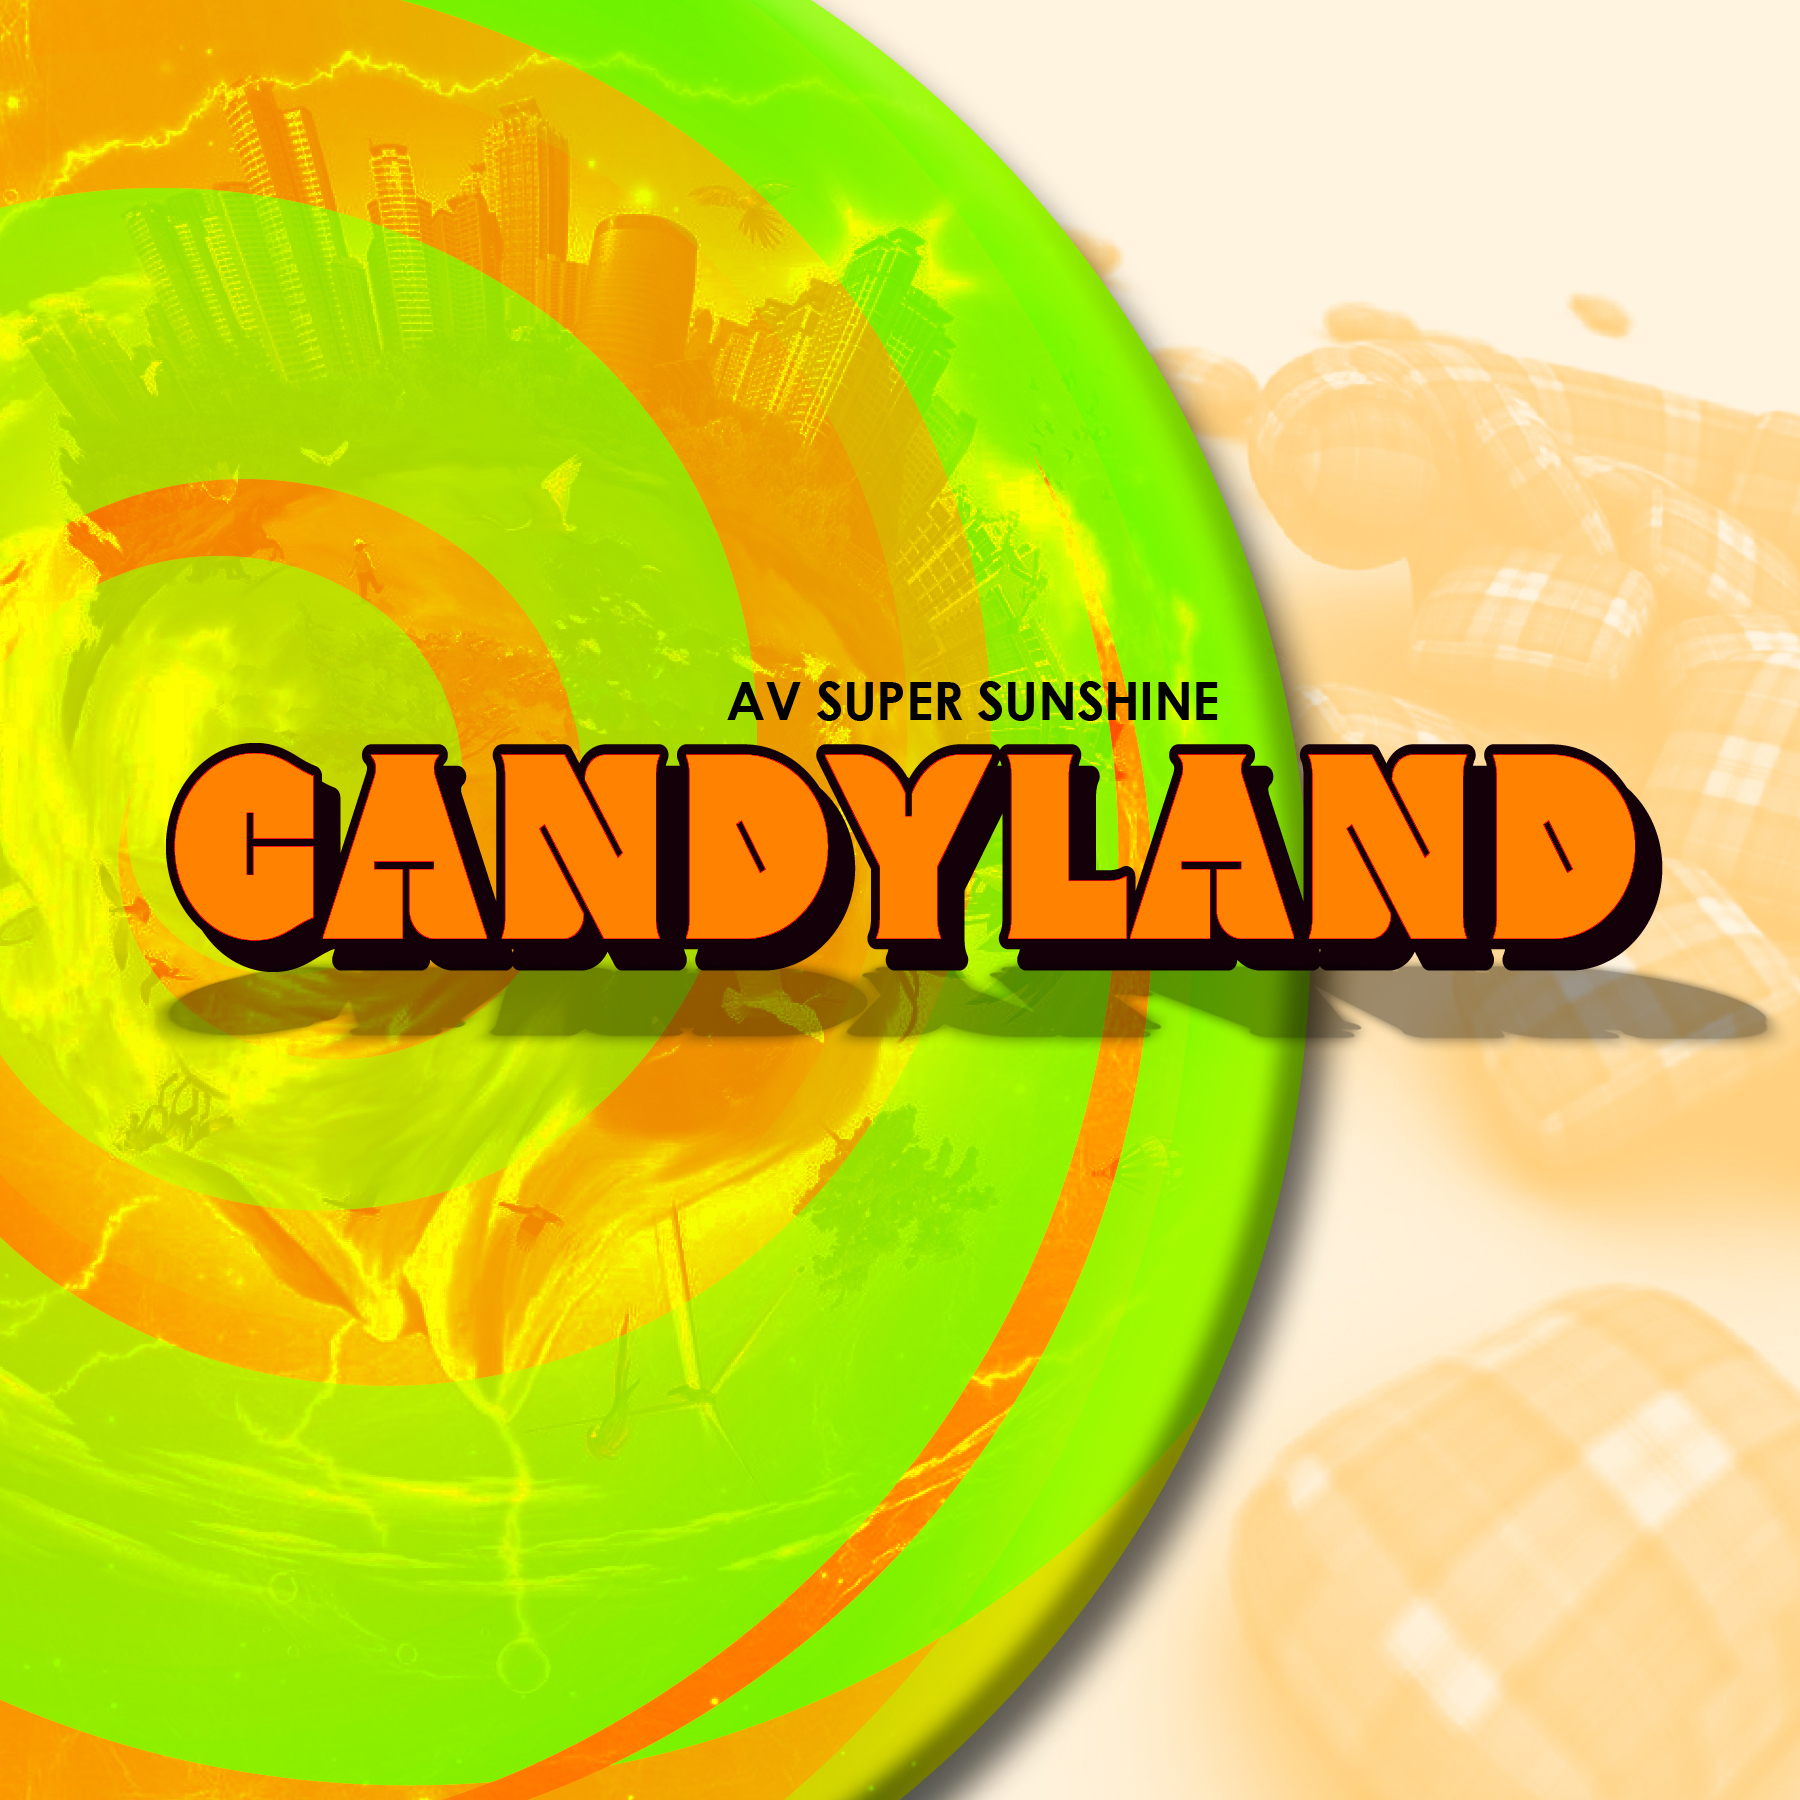 Candyland-Cover2b